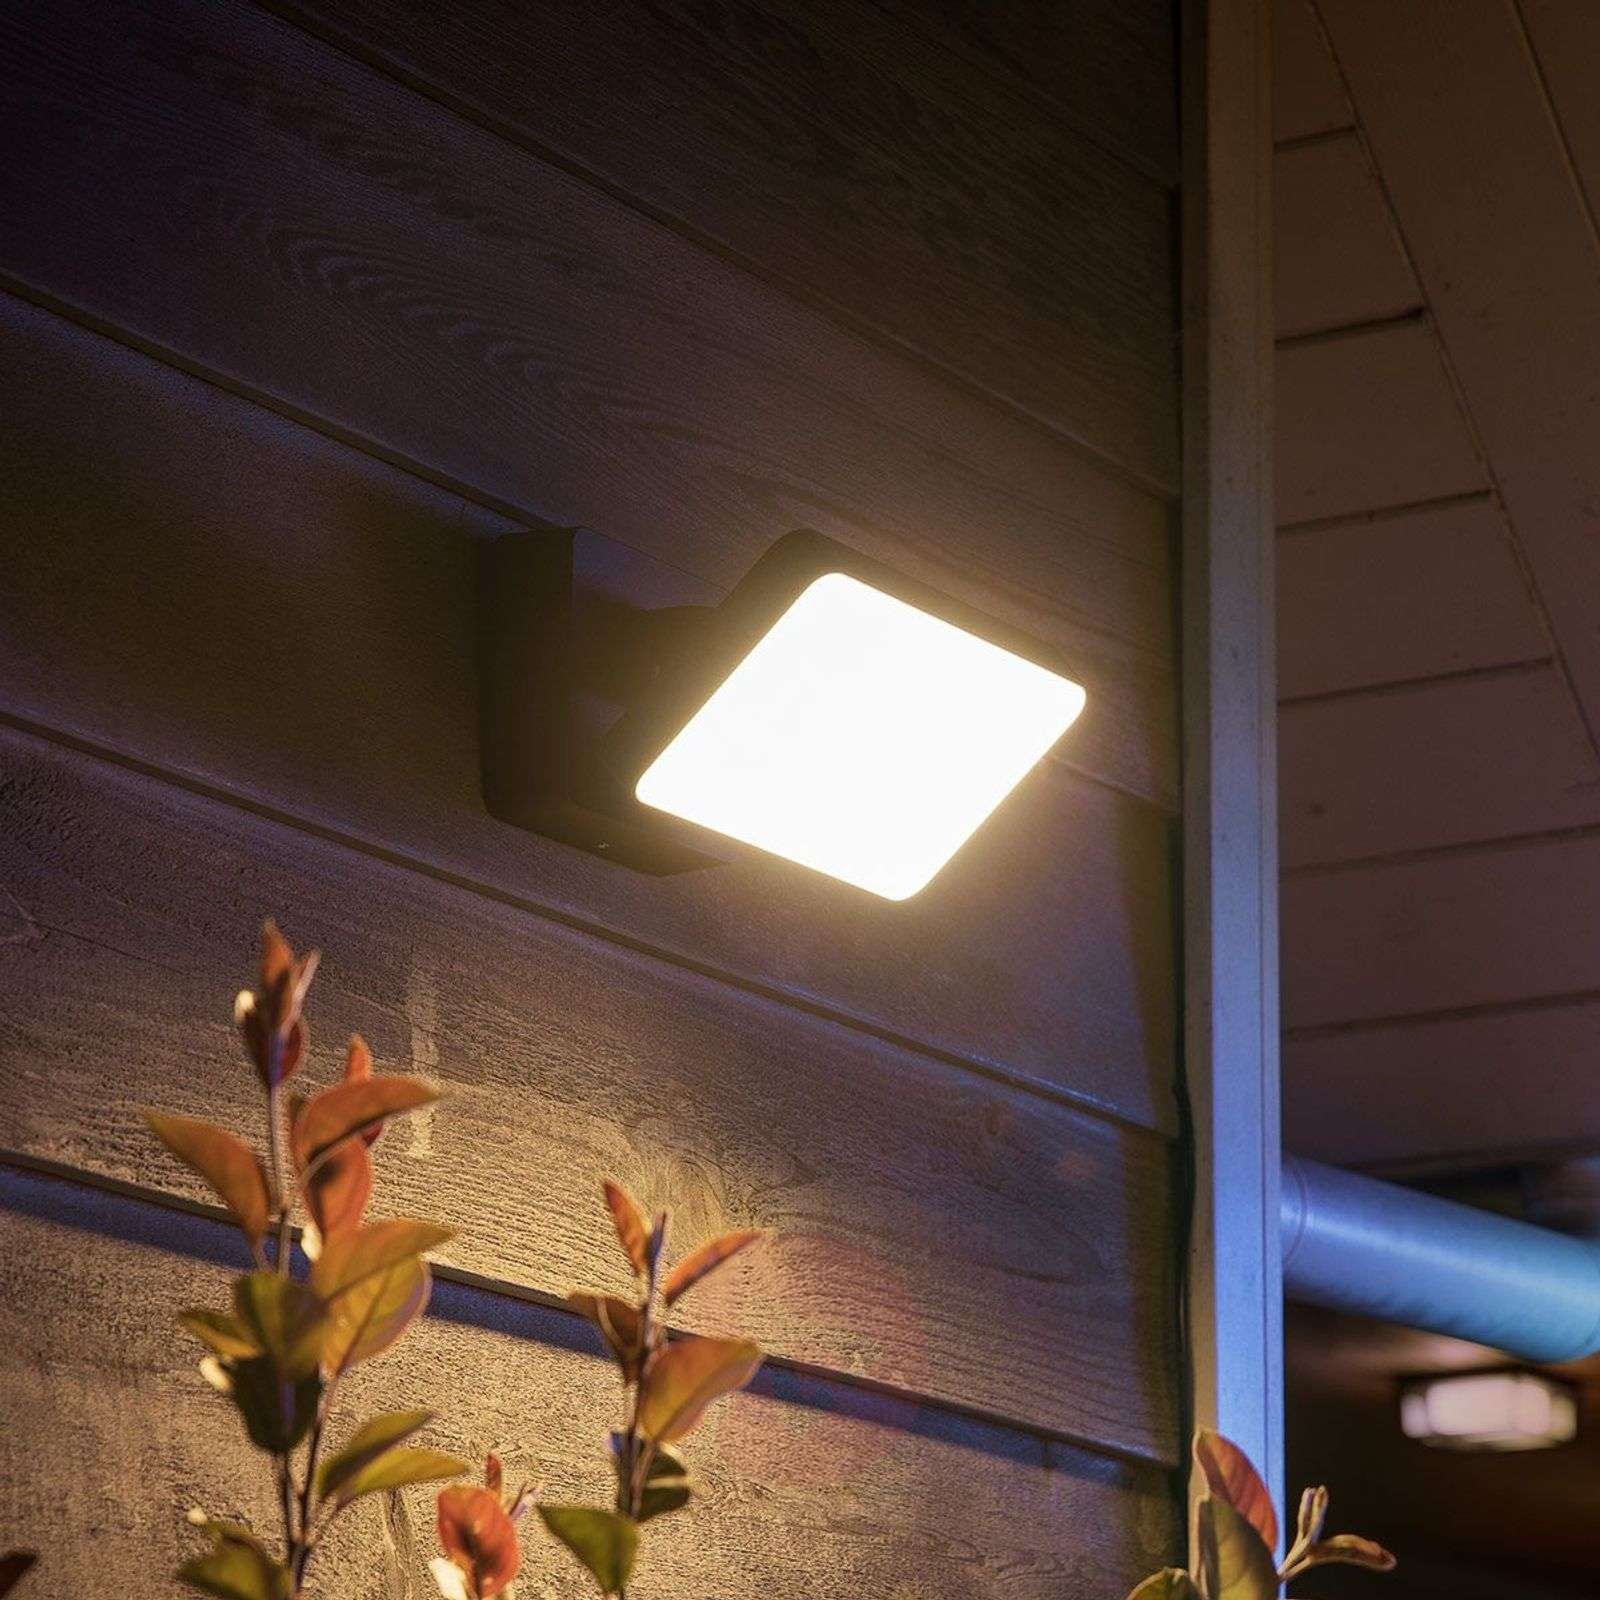 Philips Hue White Welcome kohdevalo ulos 2300lm-7534101-02